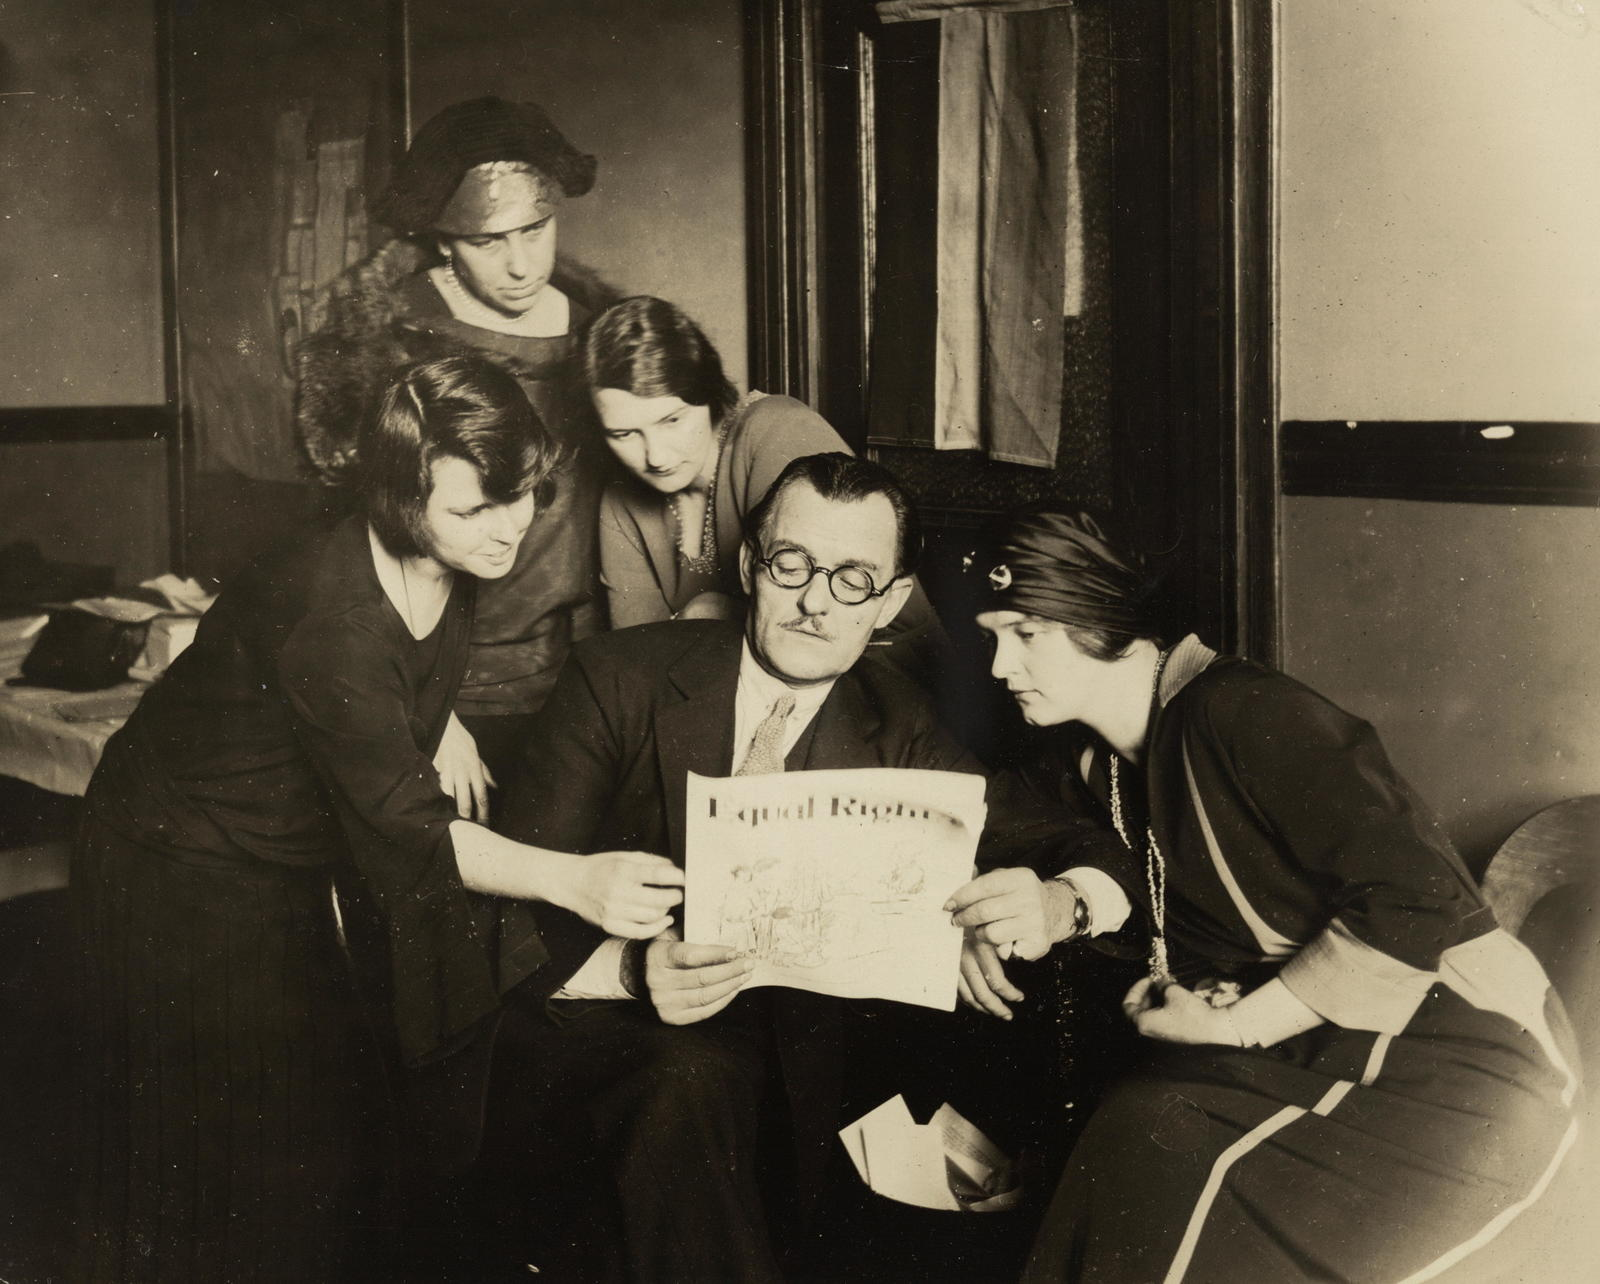 "Richard Bennett, noted actor, calling at National Woman's Party Headquarters, underwrites the Equal Rights campaign, and declares: - ""Certainly I am a feminist and will stand back of you women until the Equal Rights Amendment is passed by Congress."" Mr. Bennett is surrounded by a group of National Woman's Party leaders. (Left to right) Anita Pollitzer, National Secretary of the Woman's Party, Richard Bennett, Wilma Henderson, National Organizer: (upper left) Mrs. Everett Bray, a Founder, and Jessica D. Henerson, member of the Massachusetts State Committee."